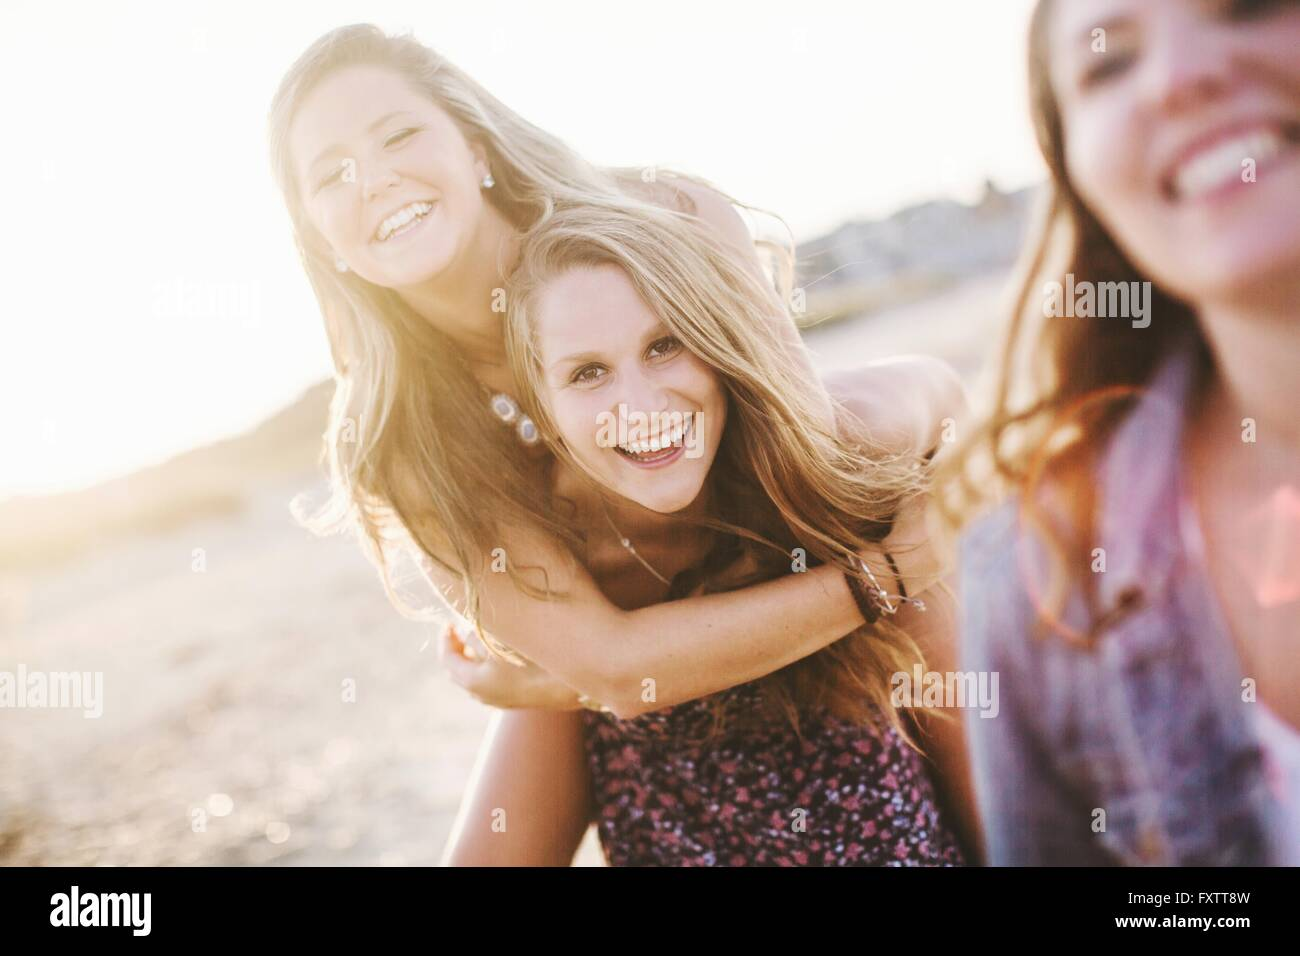 Woman on beach giving friend piggyback looking at camera smiling - Stock Image